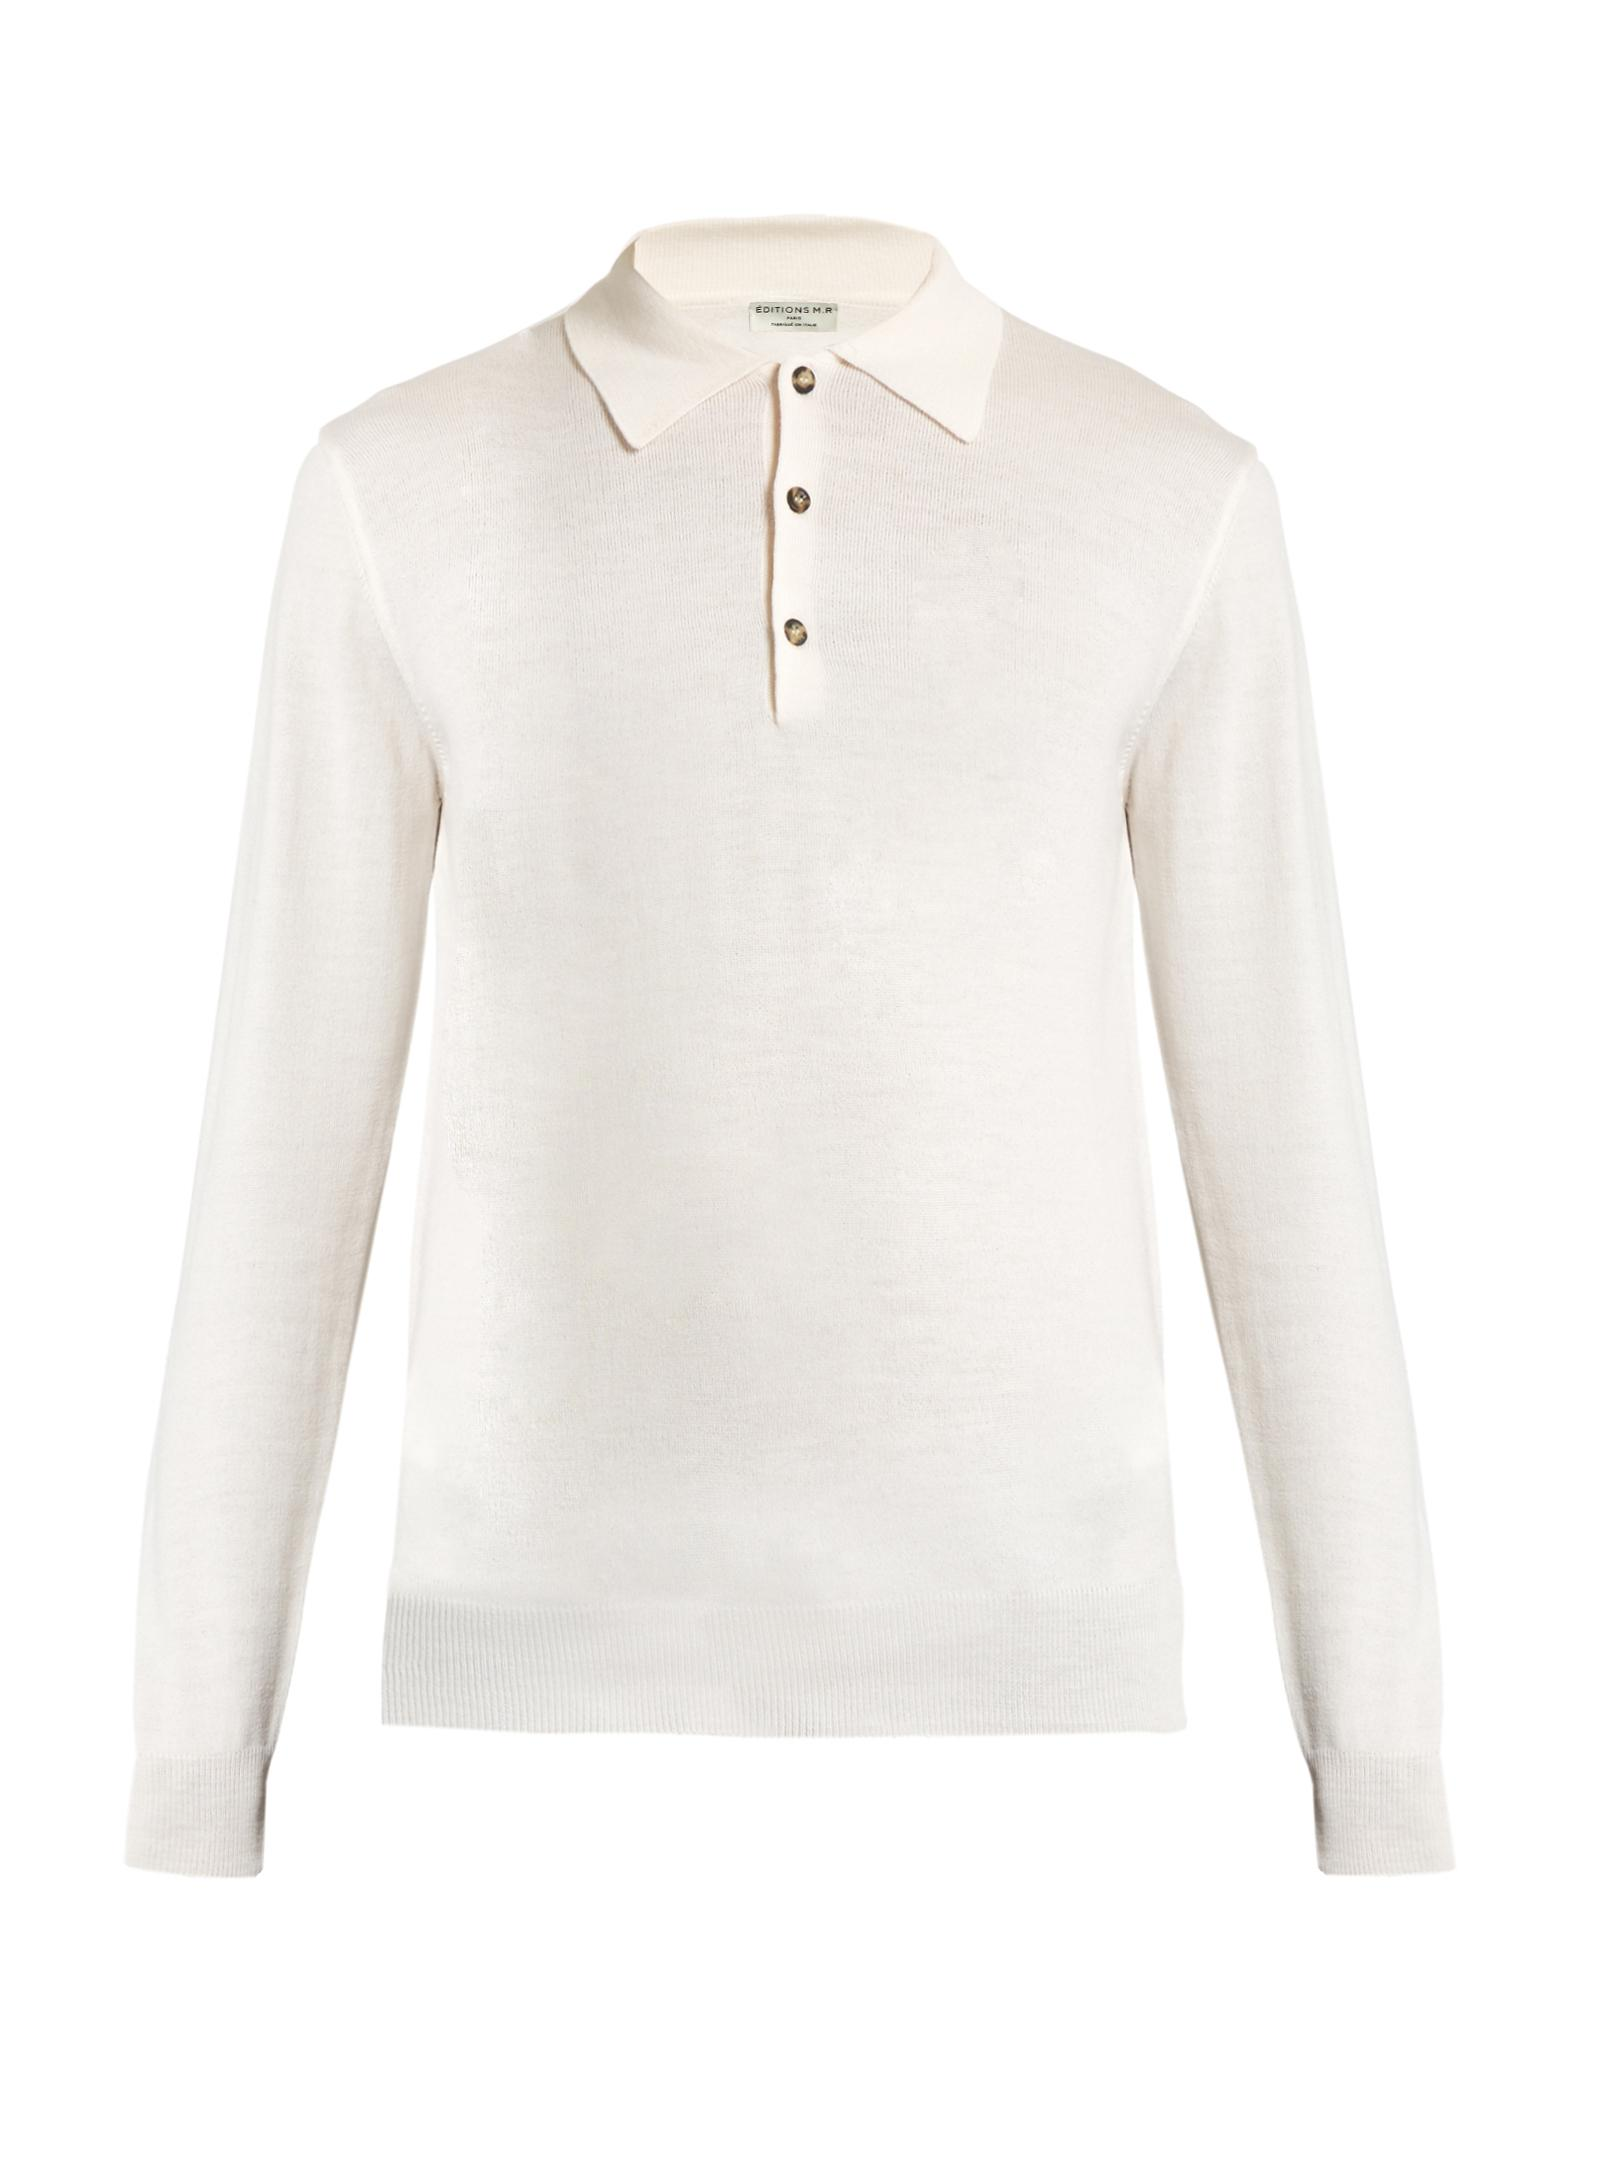 Ditions mr long sleeved wool polo shirt in white for men for Long sleeve wool polo shirts